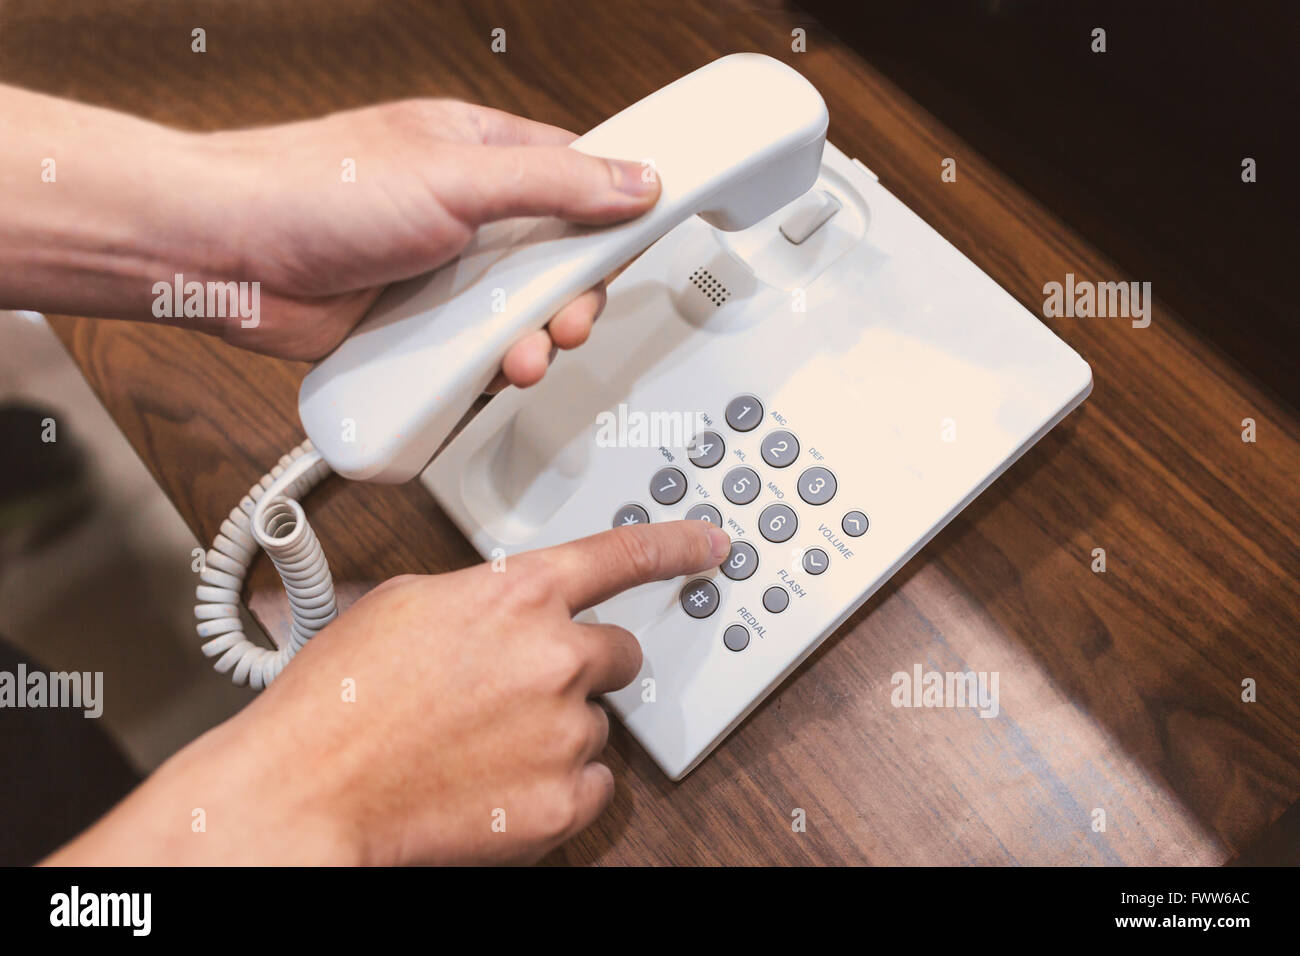 Human hands holding telephone handle and dialing on wooden table . - Stock Image